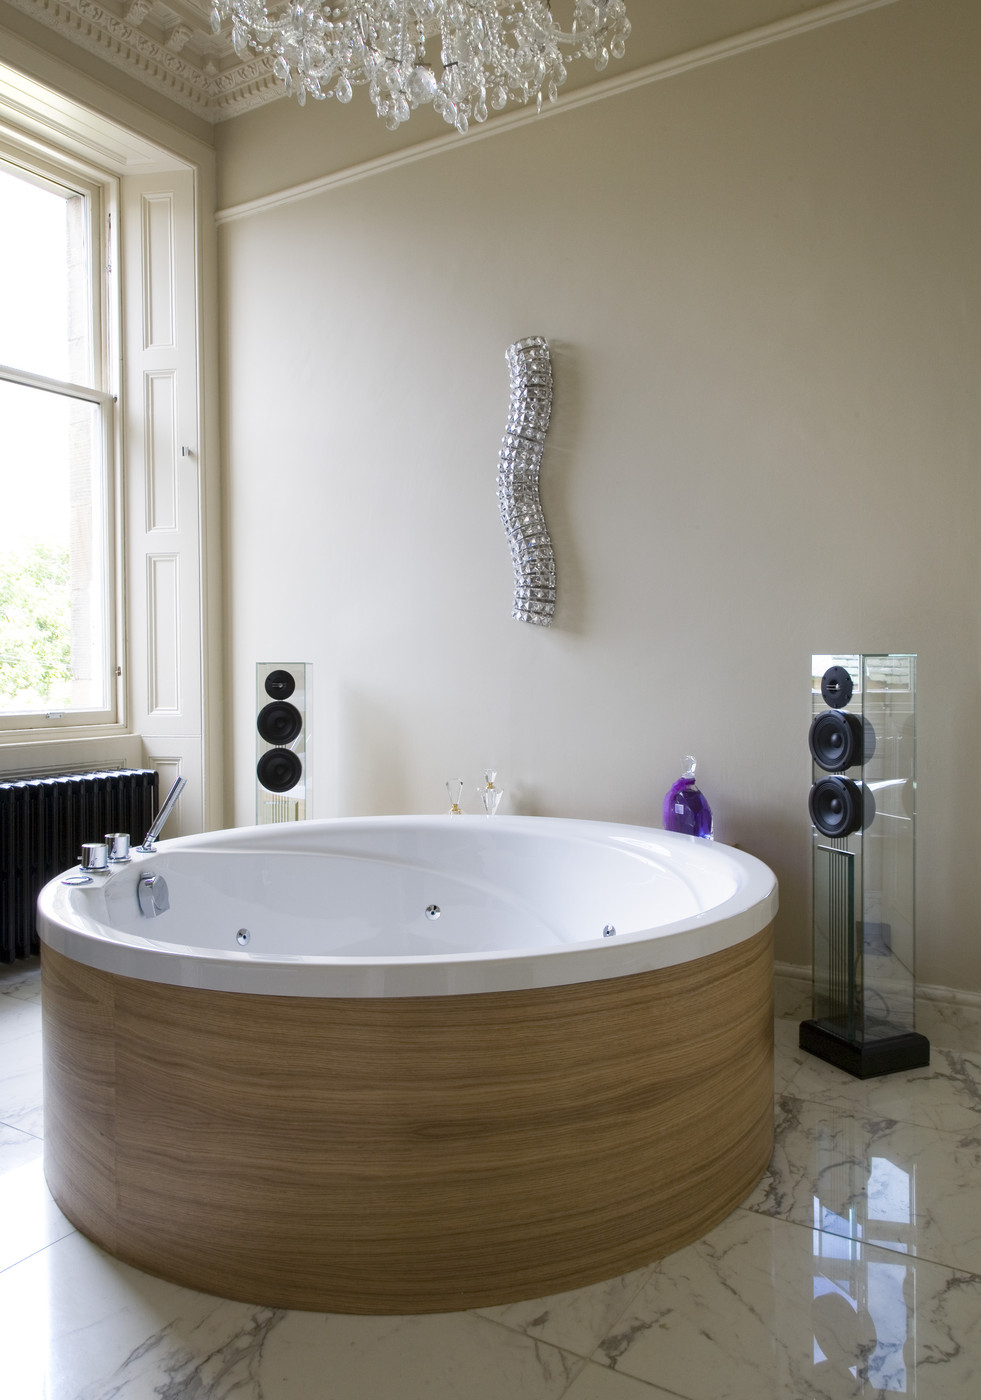 Round Bathtub Photos Design Ideas Remodel And Decor